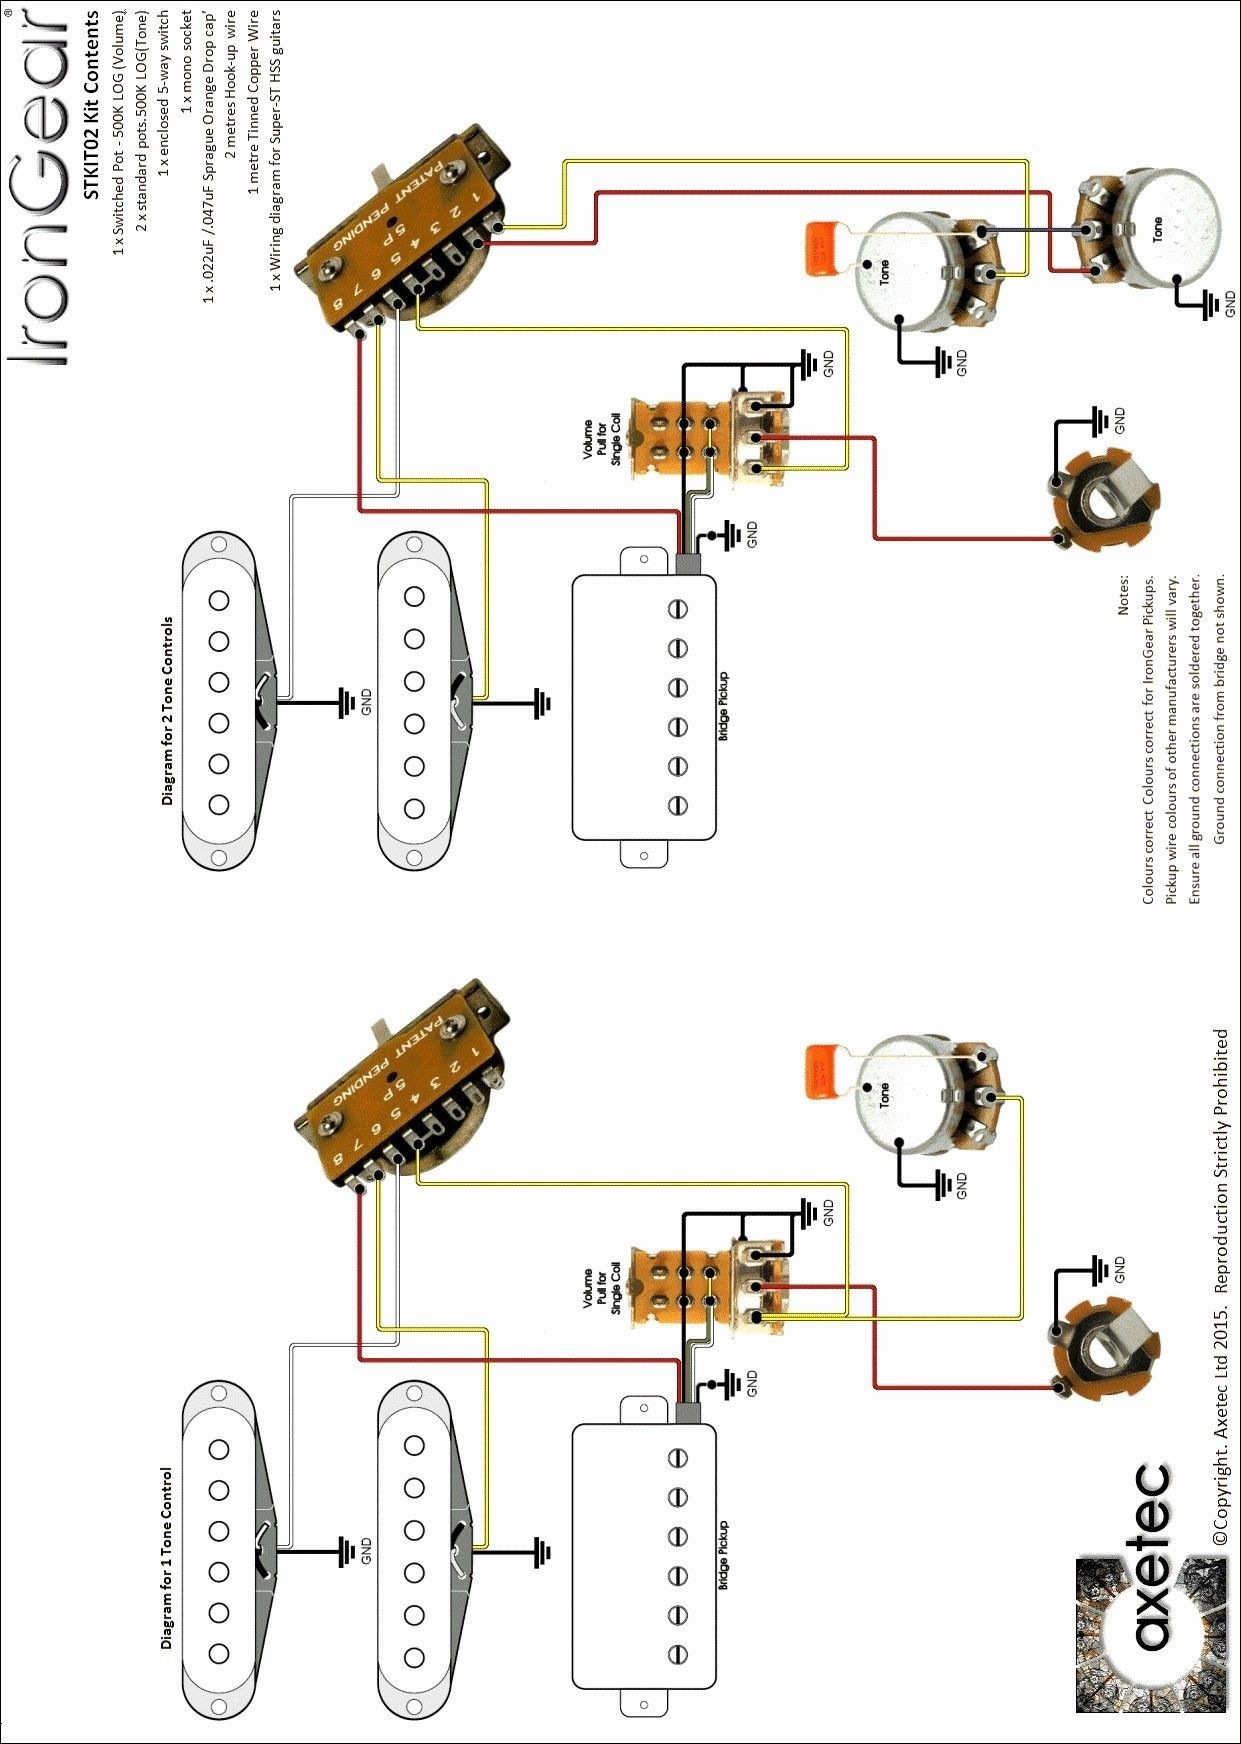 hight resolution of 2 humbuckers 1 volume 1 tone 3 way switch inspirational fine guitar with regard to guitar wiring diagram 2 humbucker 1 volume 1 tone